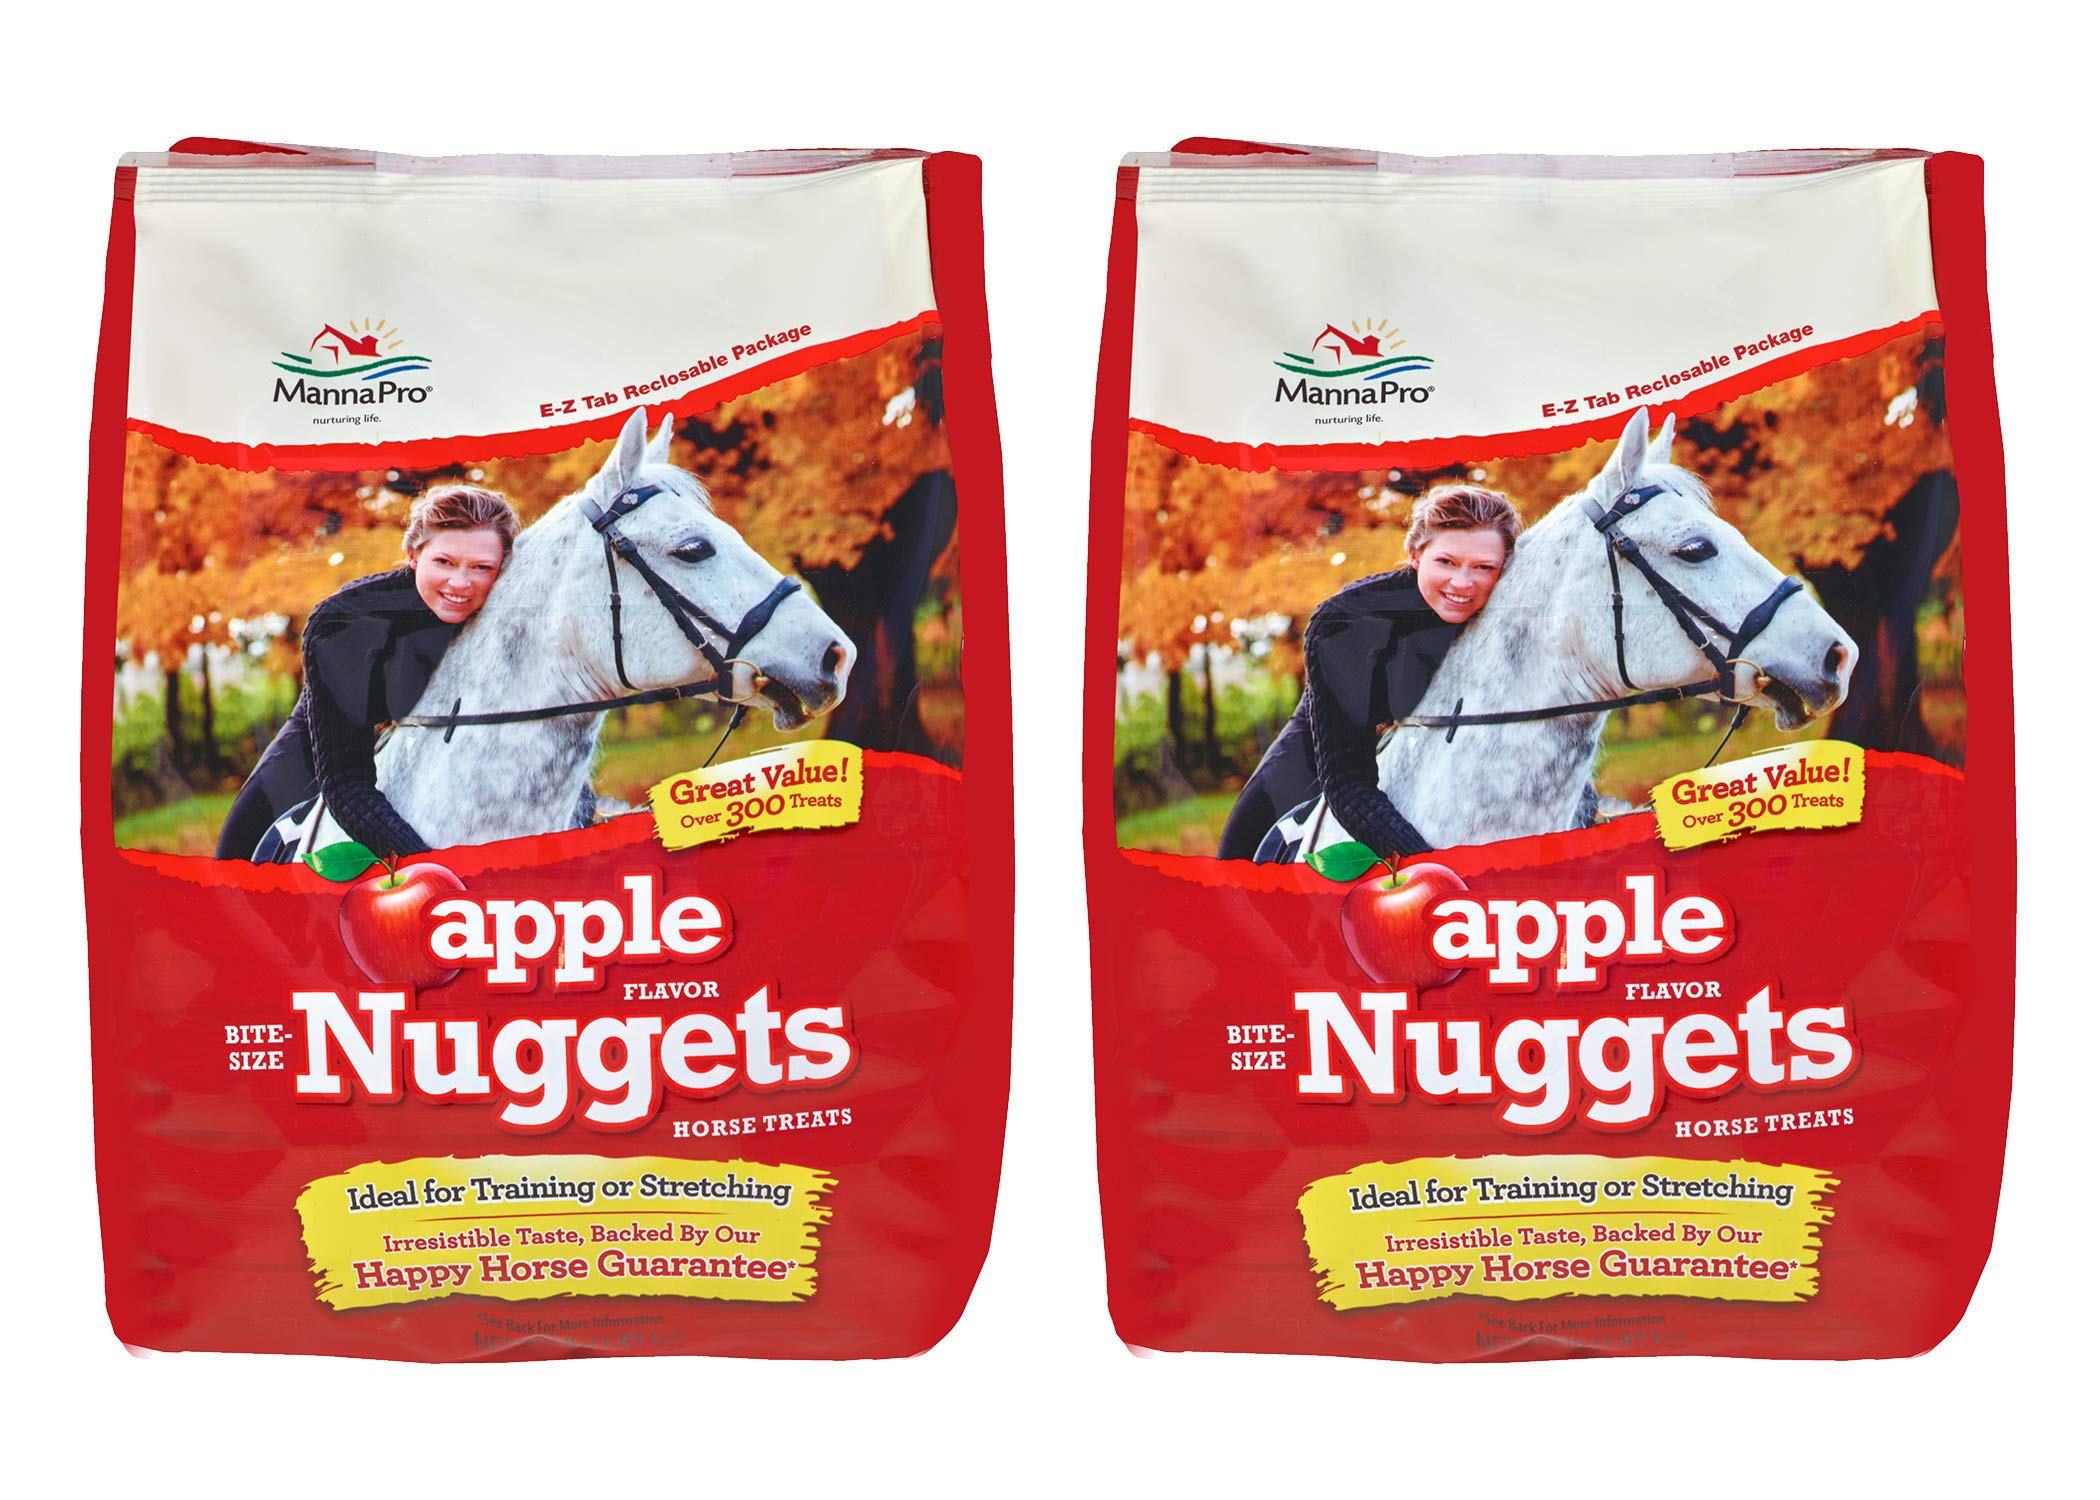 Manna Pro Horse Treat Multipack Apple, 4 Pounds (Pack of 2) by Manna Pro